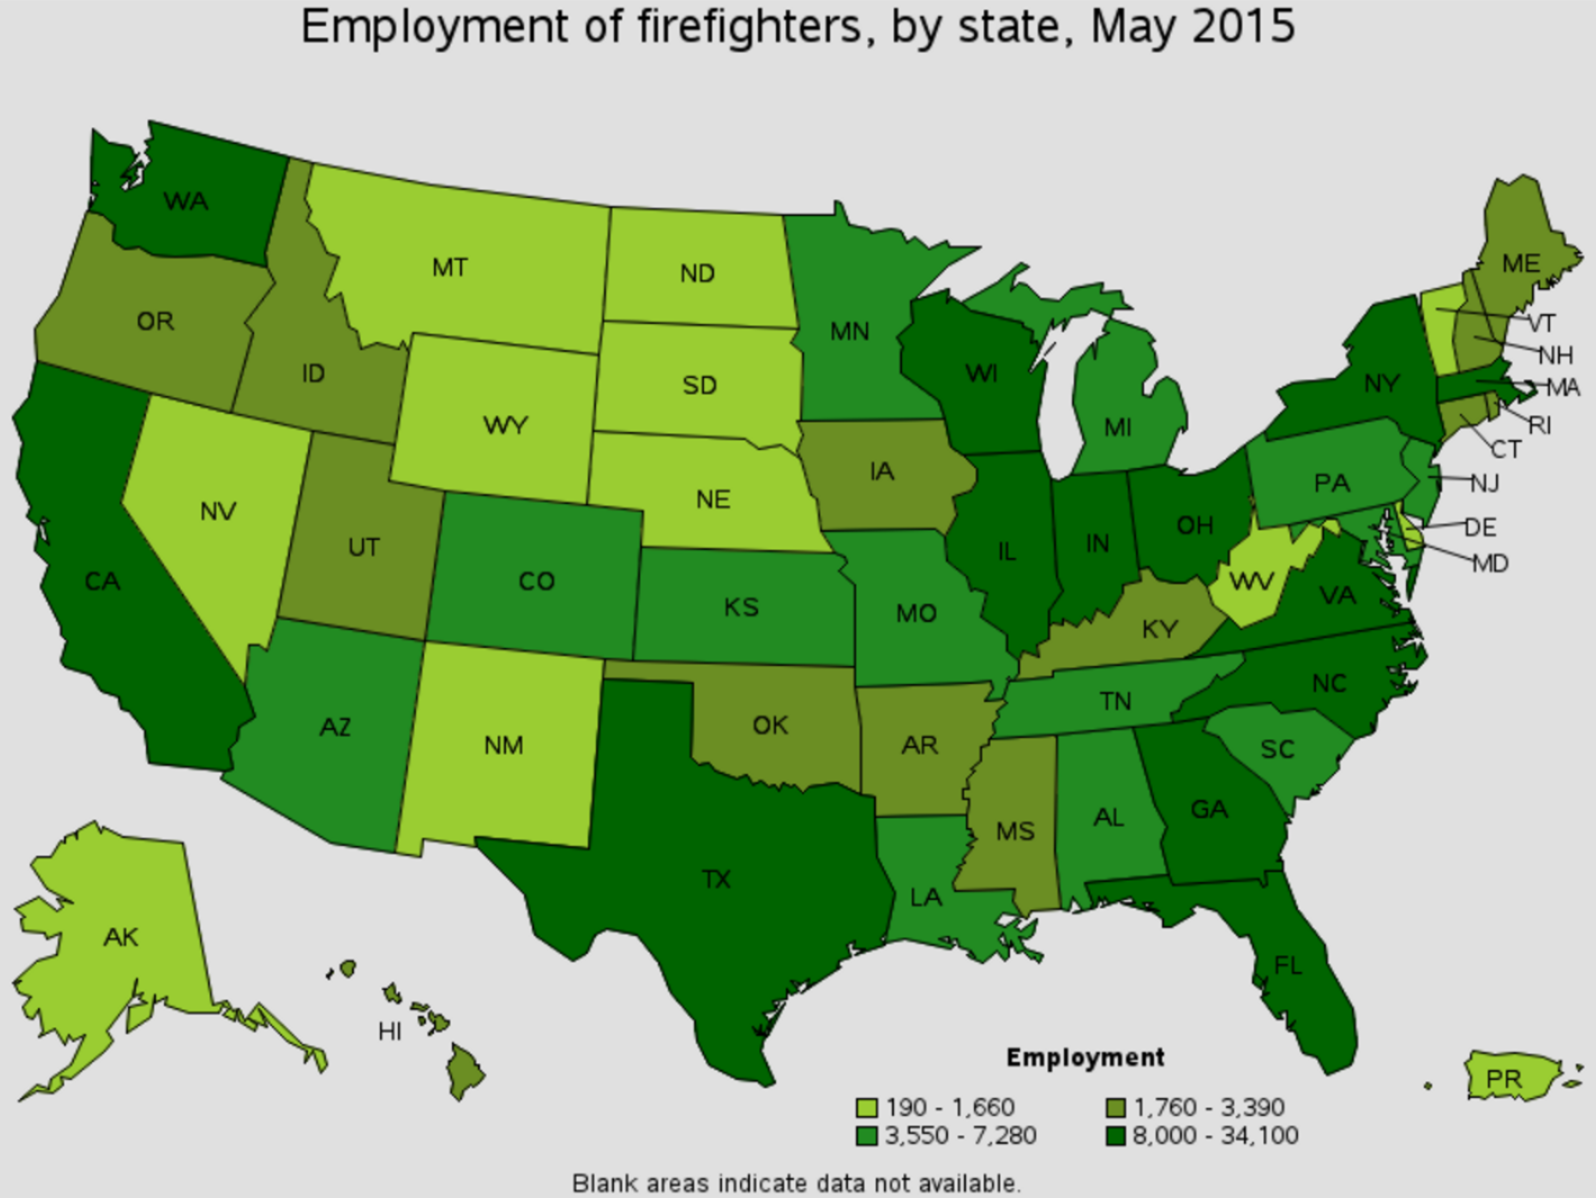 firefighter job outlook by state Vicksburg Mississippi